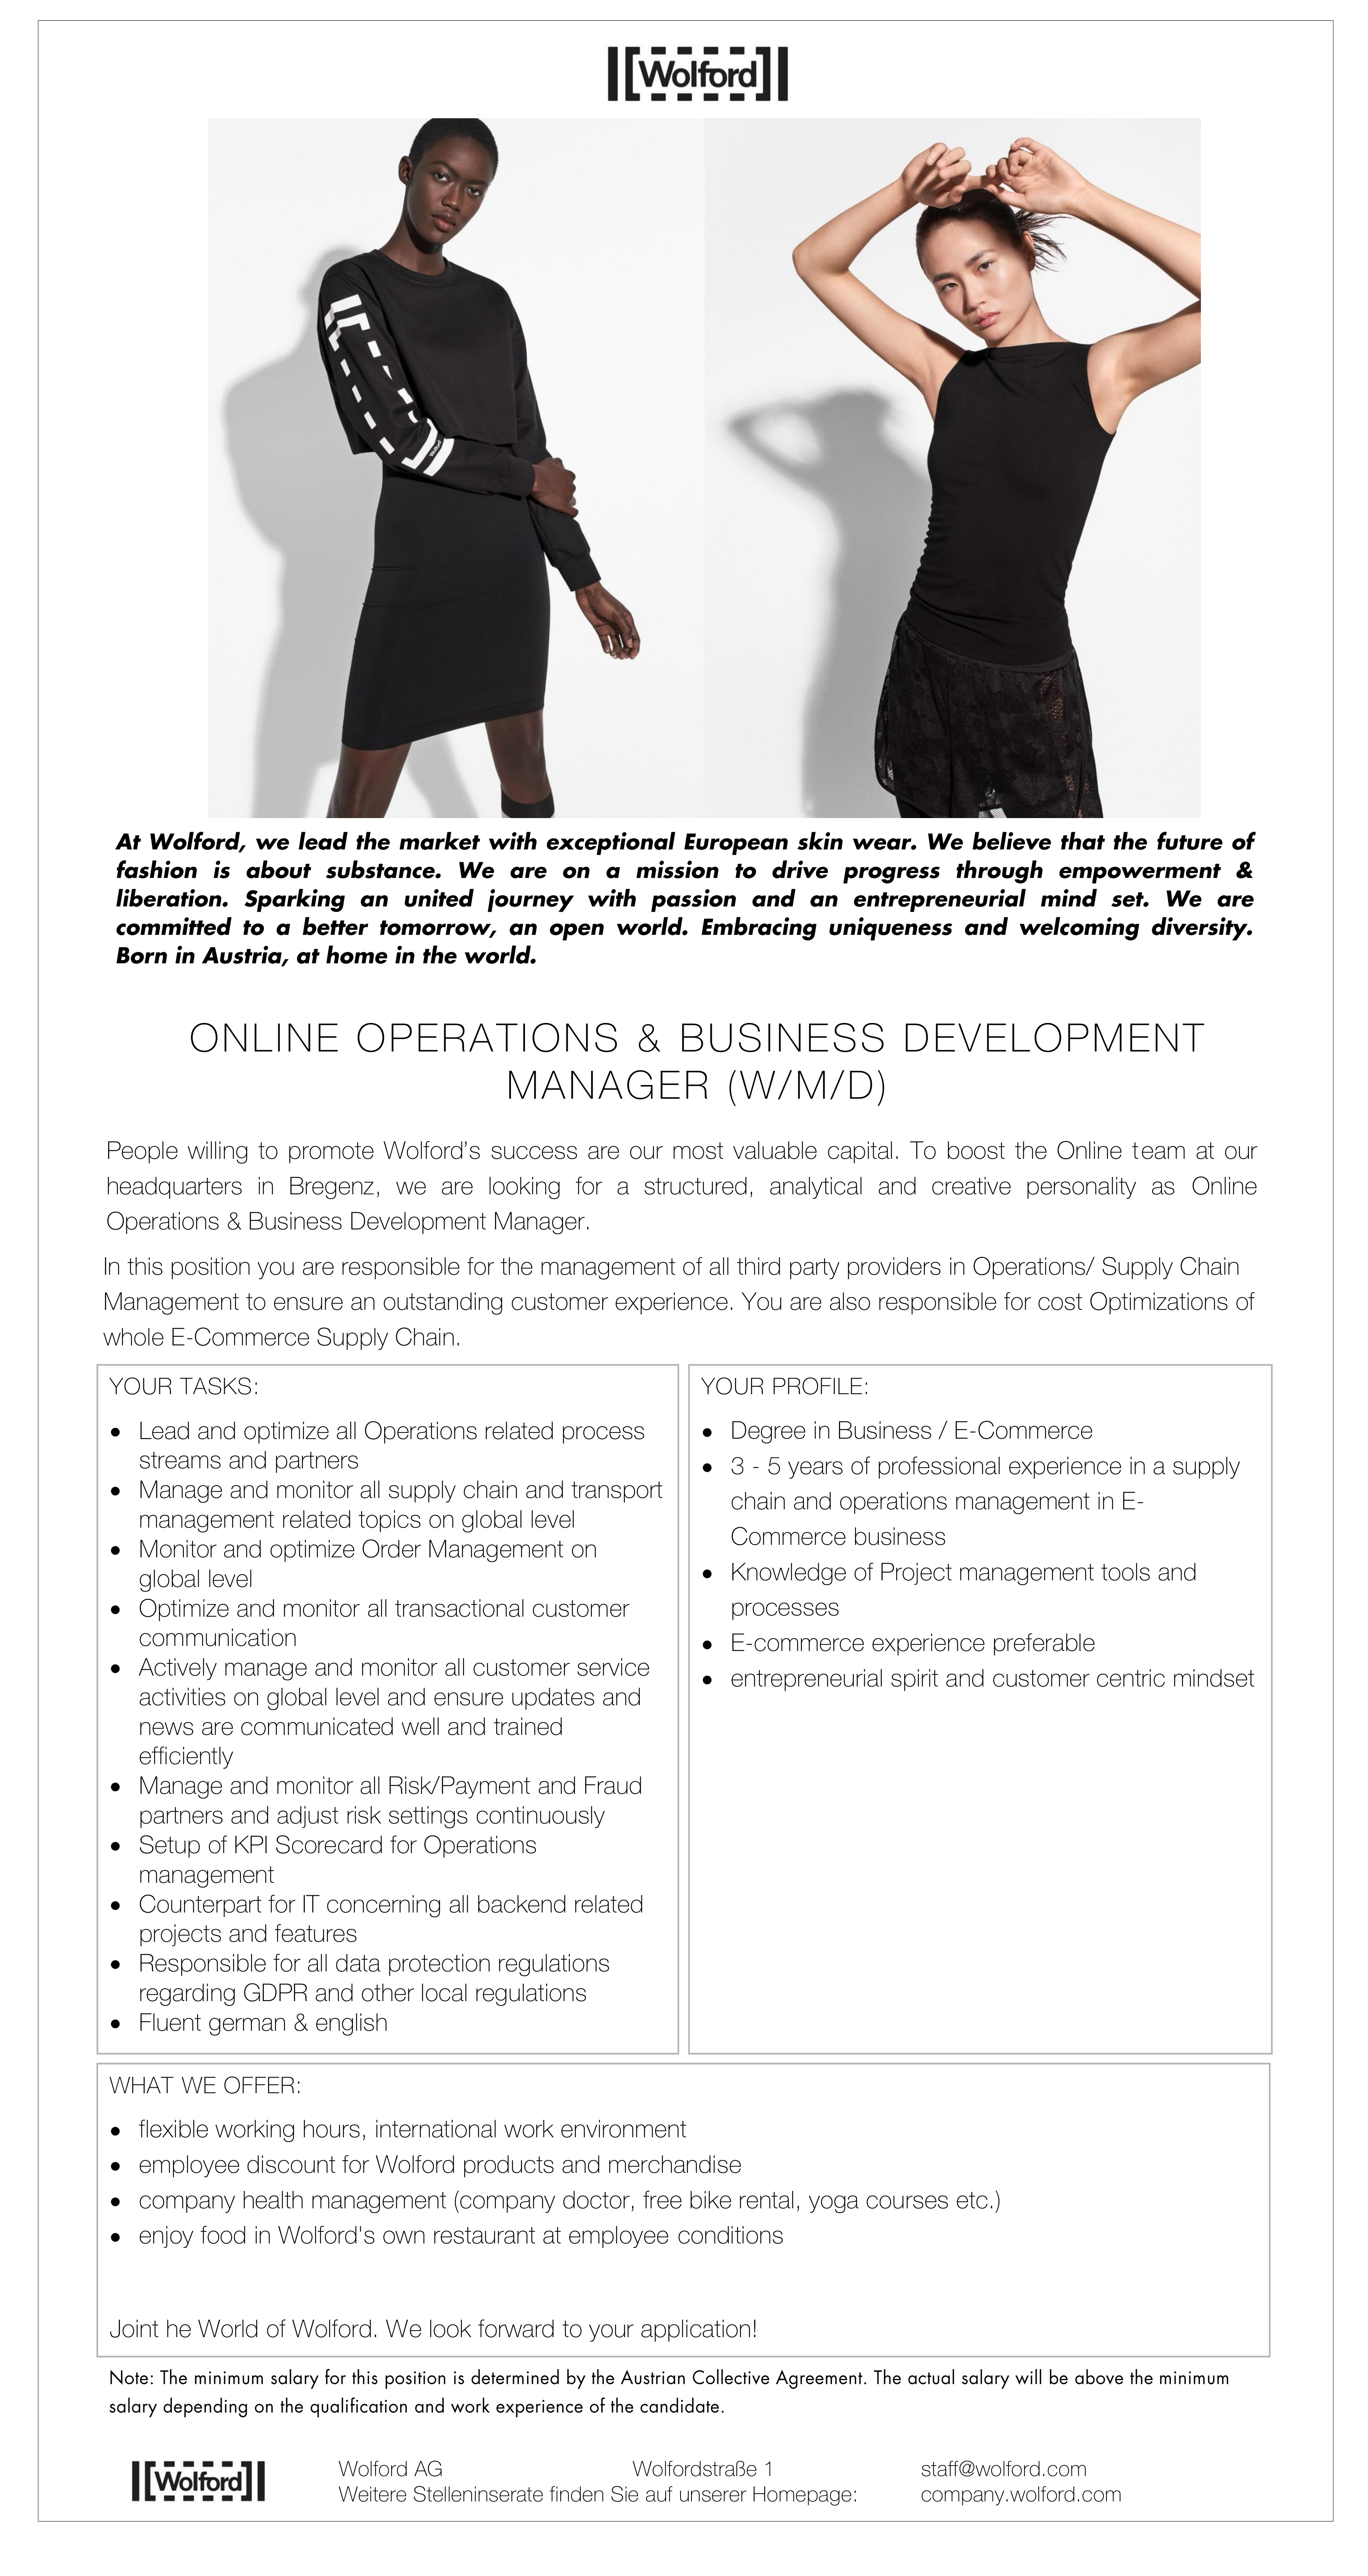 Online Operations & Business Development Manager (w/m/d)